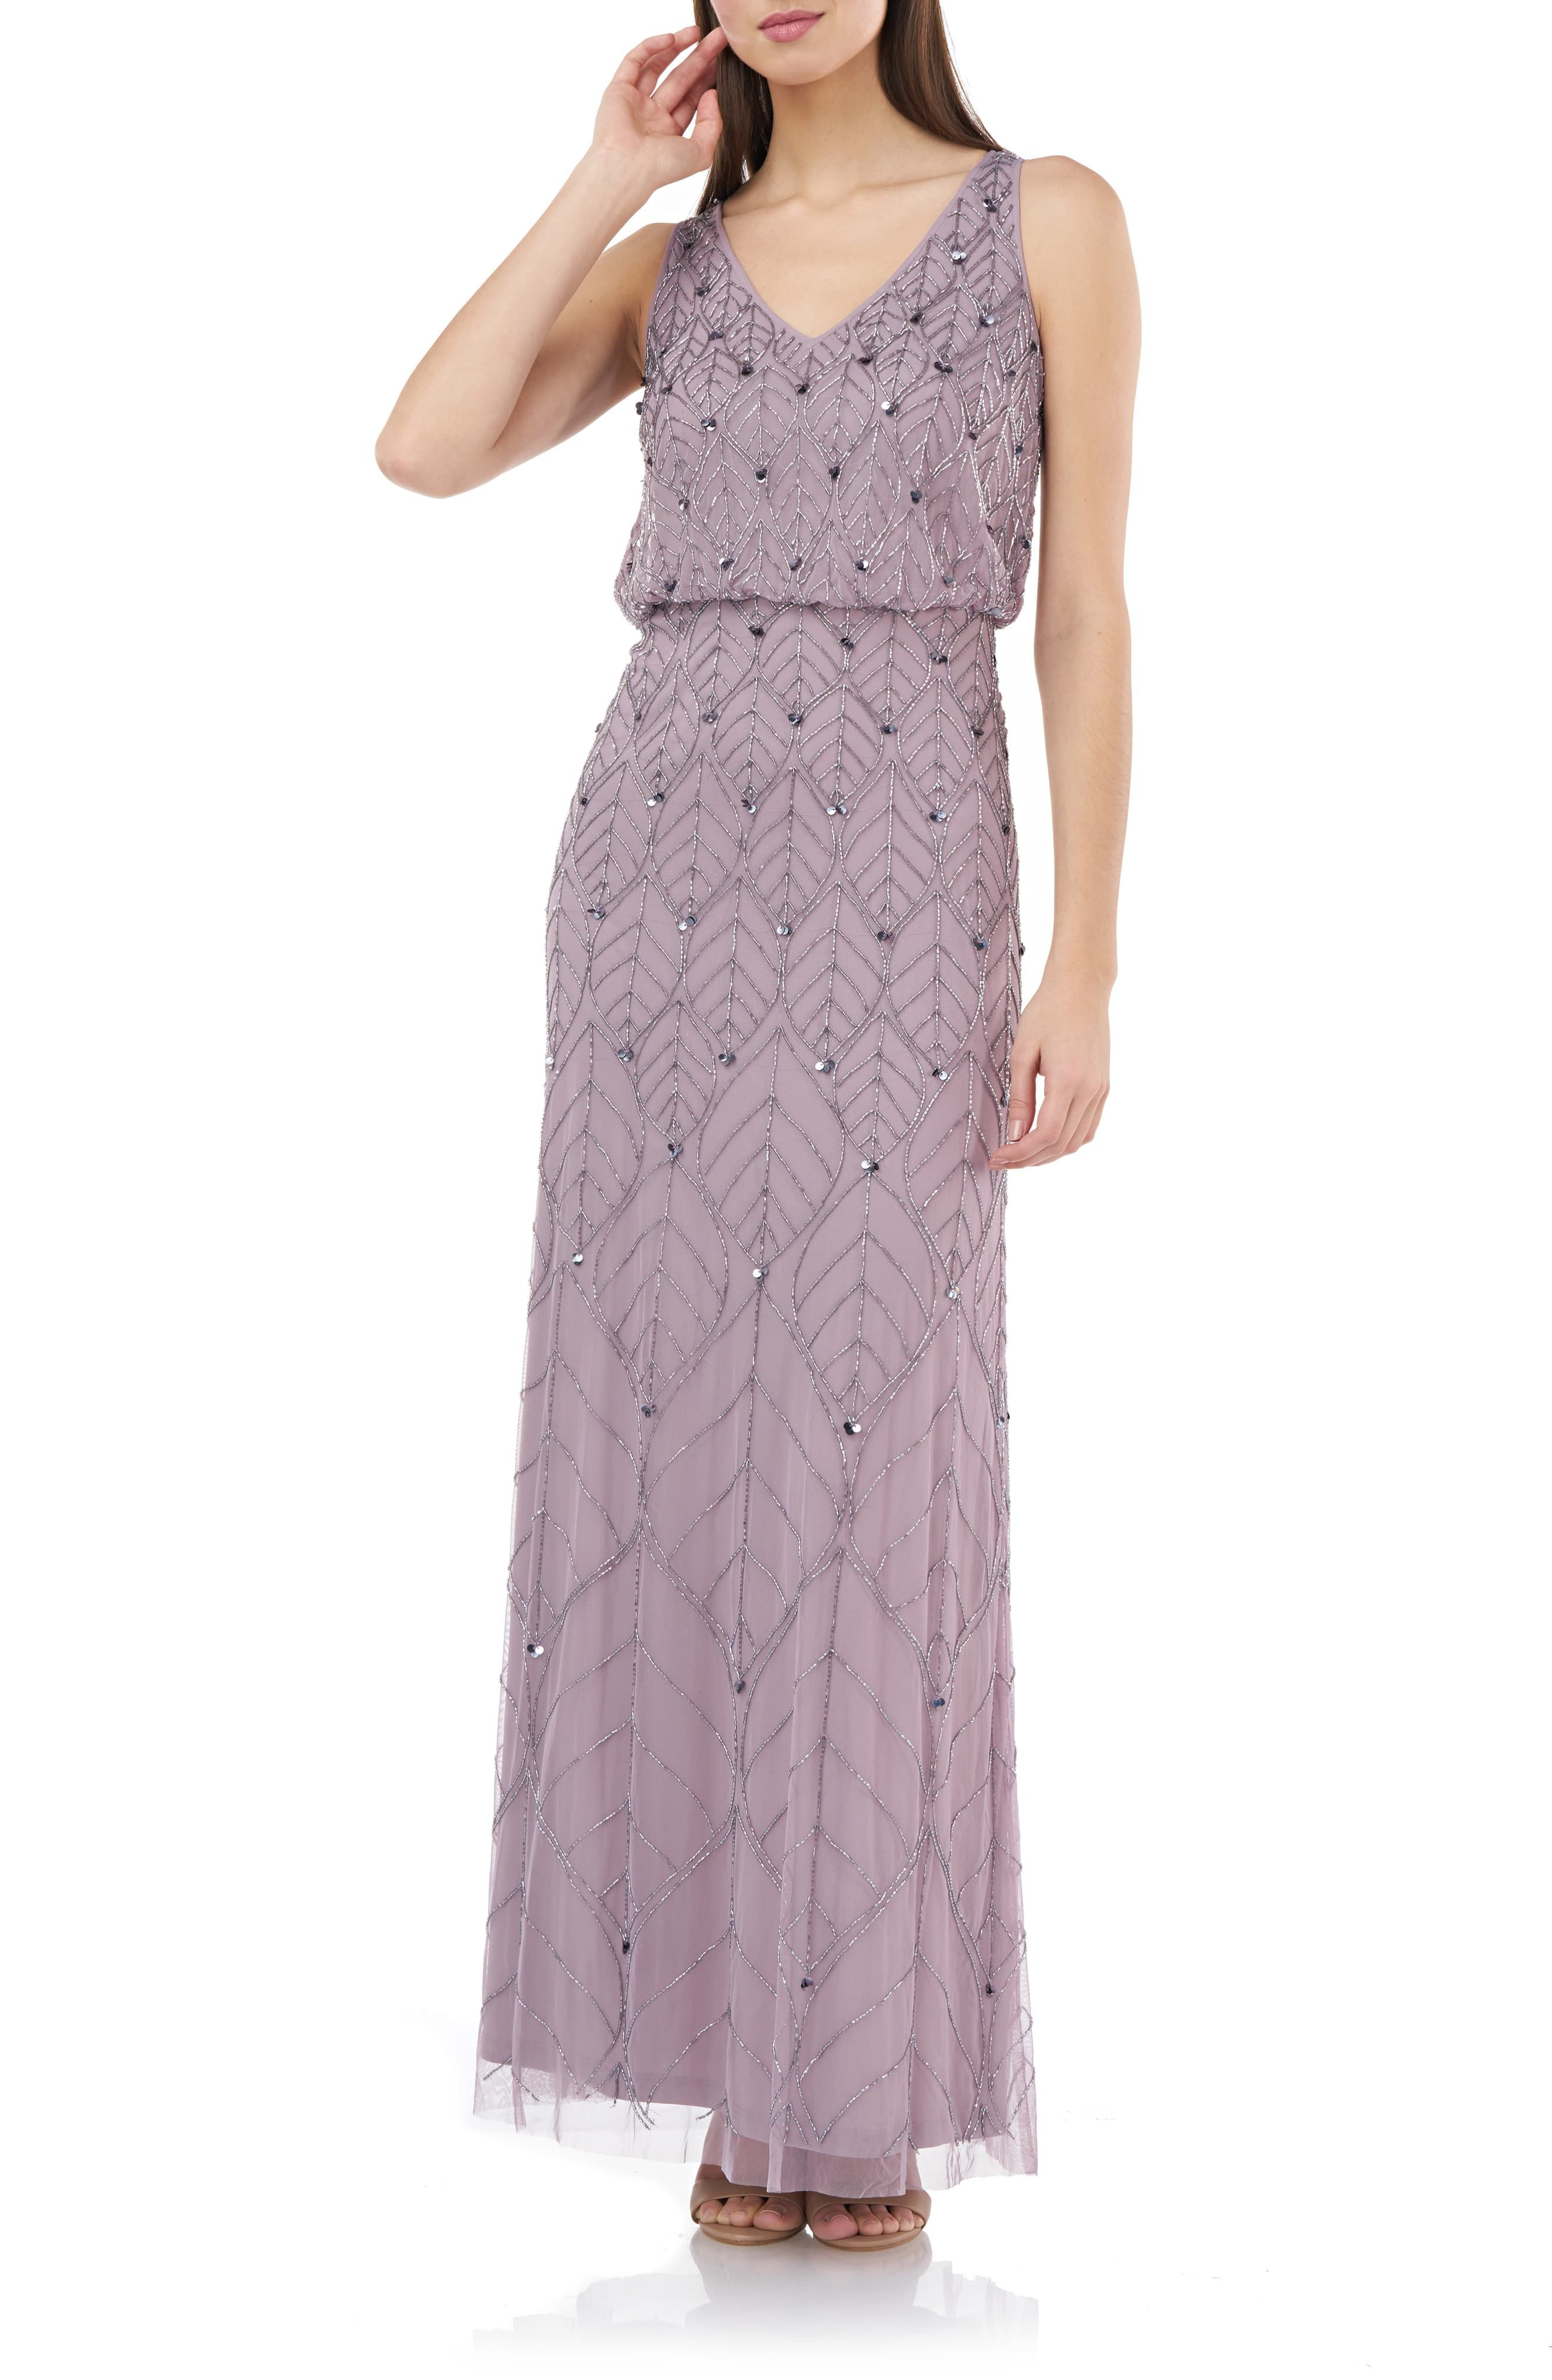 100 Great Gatsby Prom Dresses For Sale Maxi Dress Wedding Mother Of The Bride Dresses 1920s Inspired Dresses [ 4048 x 2640 Pixel ]